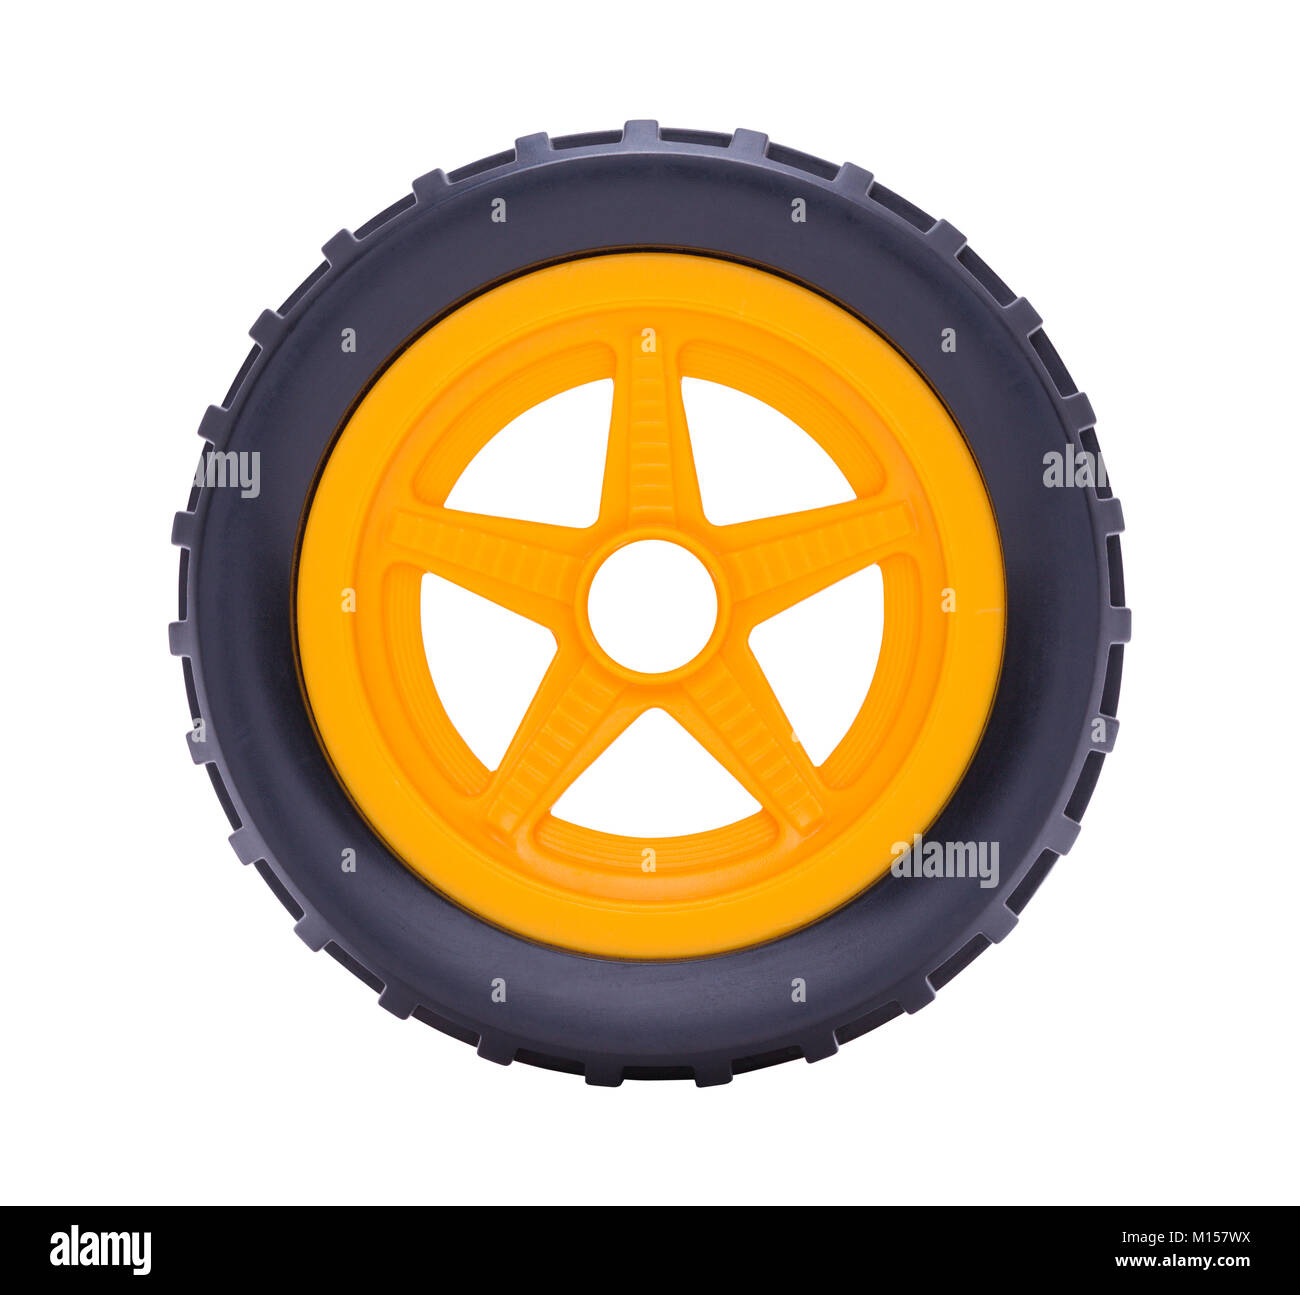 Toy Car Tire Isolated on a White Background. - Stock Image